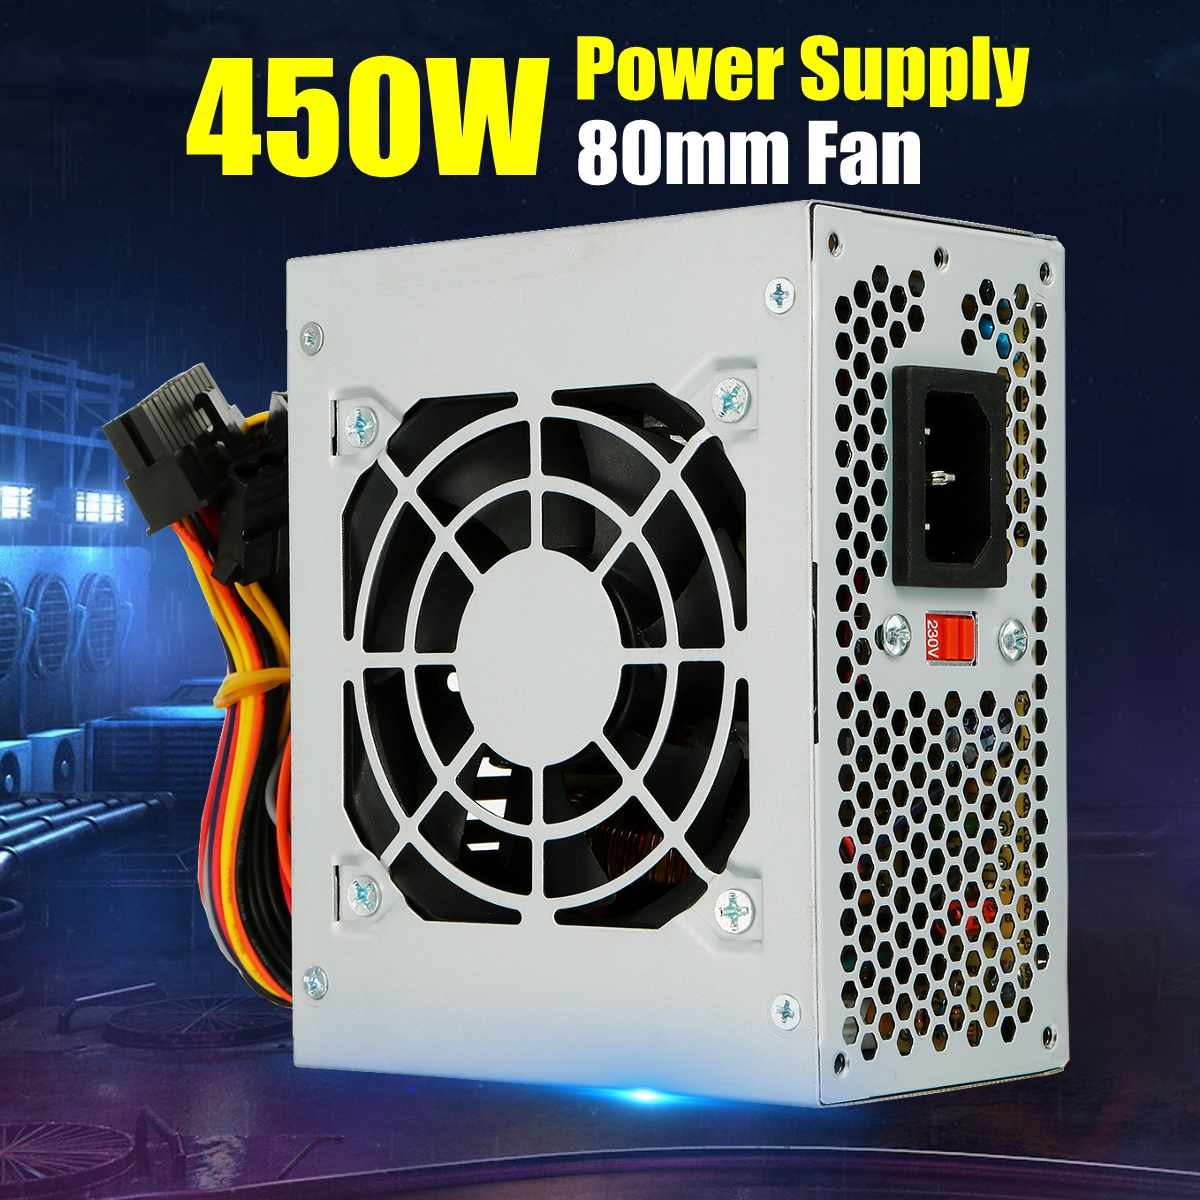 Quiet 450W For Intel AMD PC 12V ATX PC Power Supply SLI PCI-E 80mm Fan Computer Power Supply For BTC